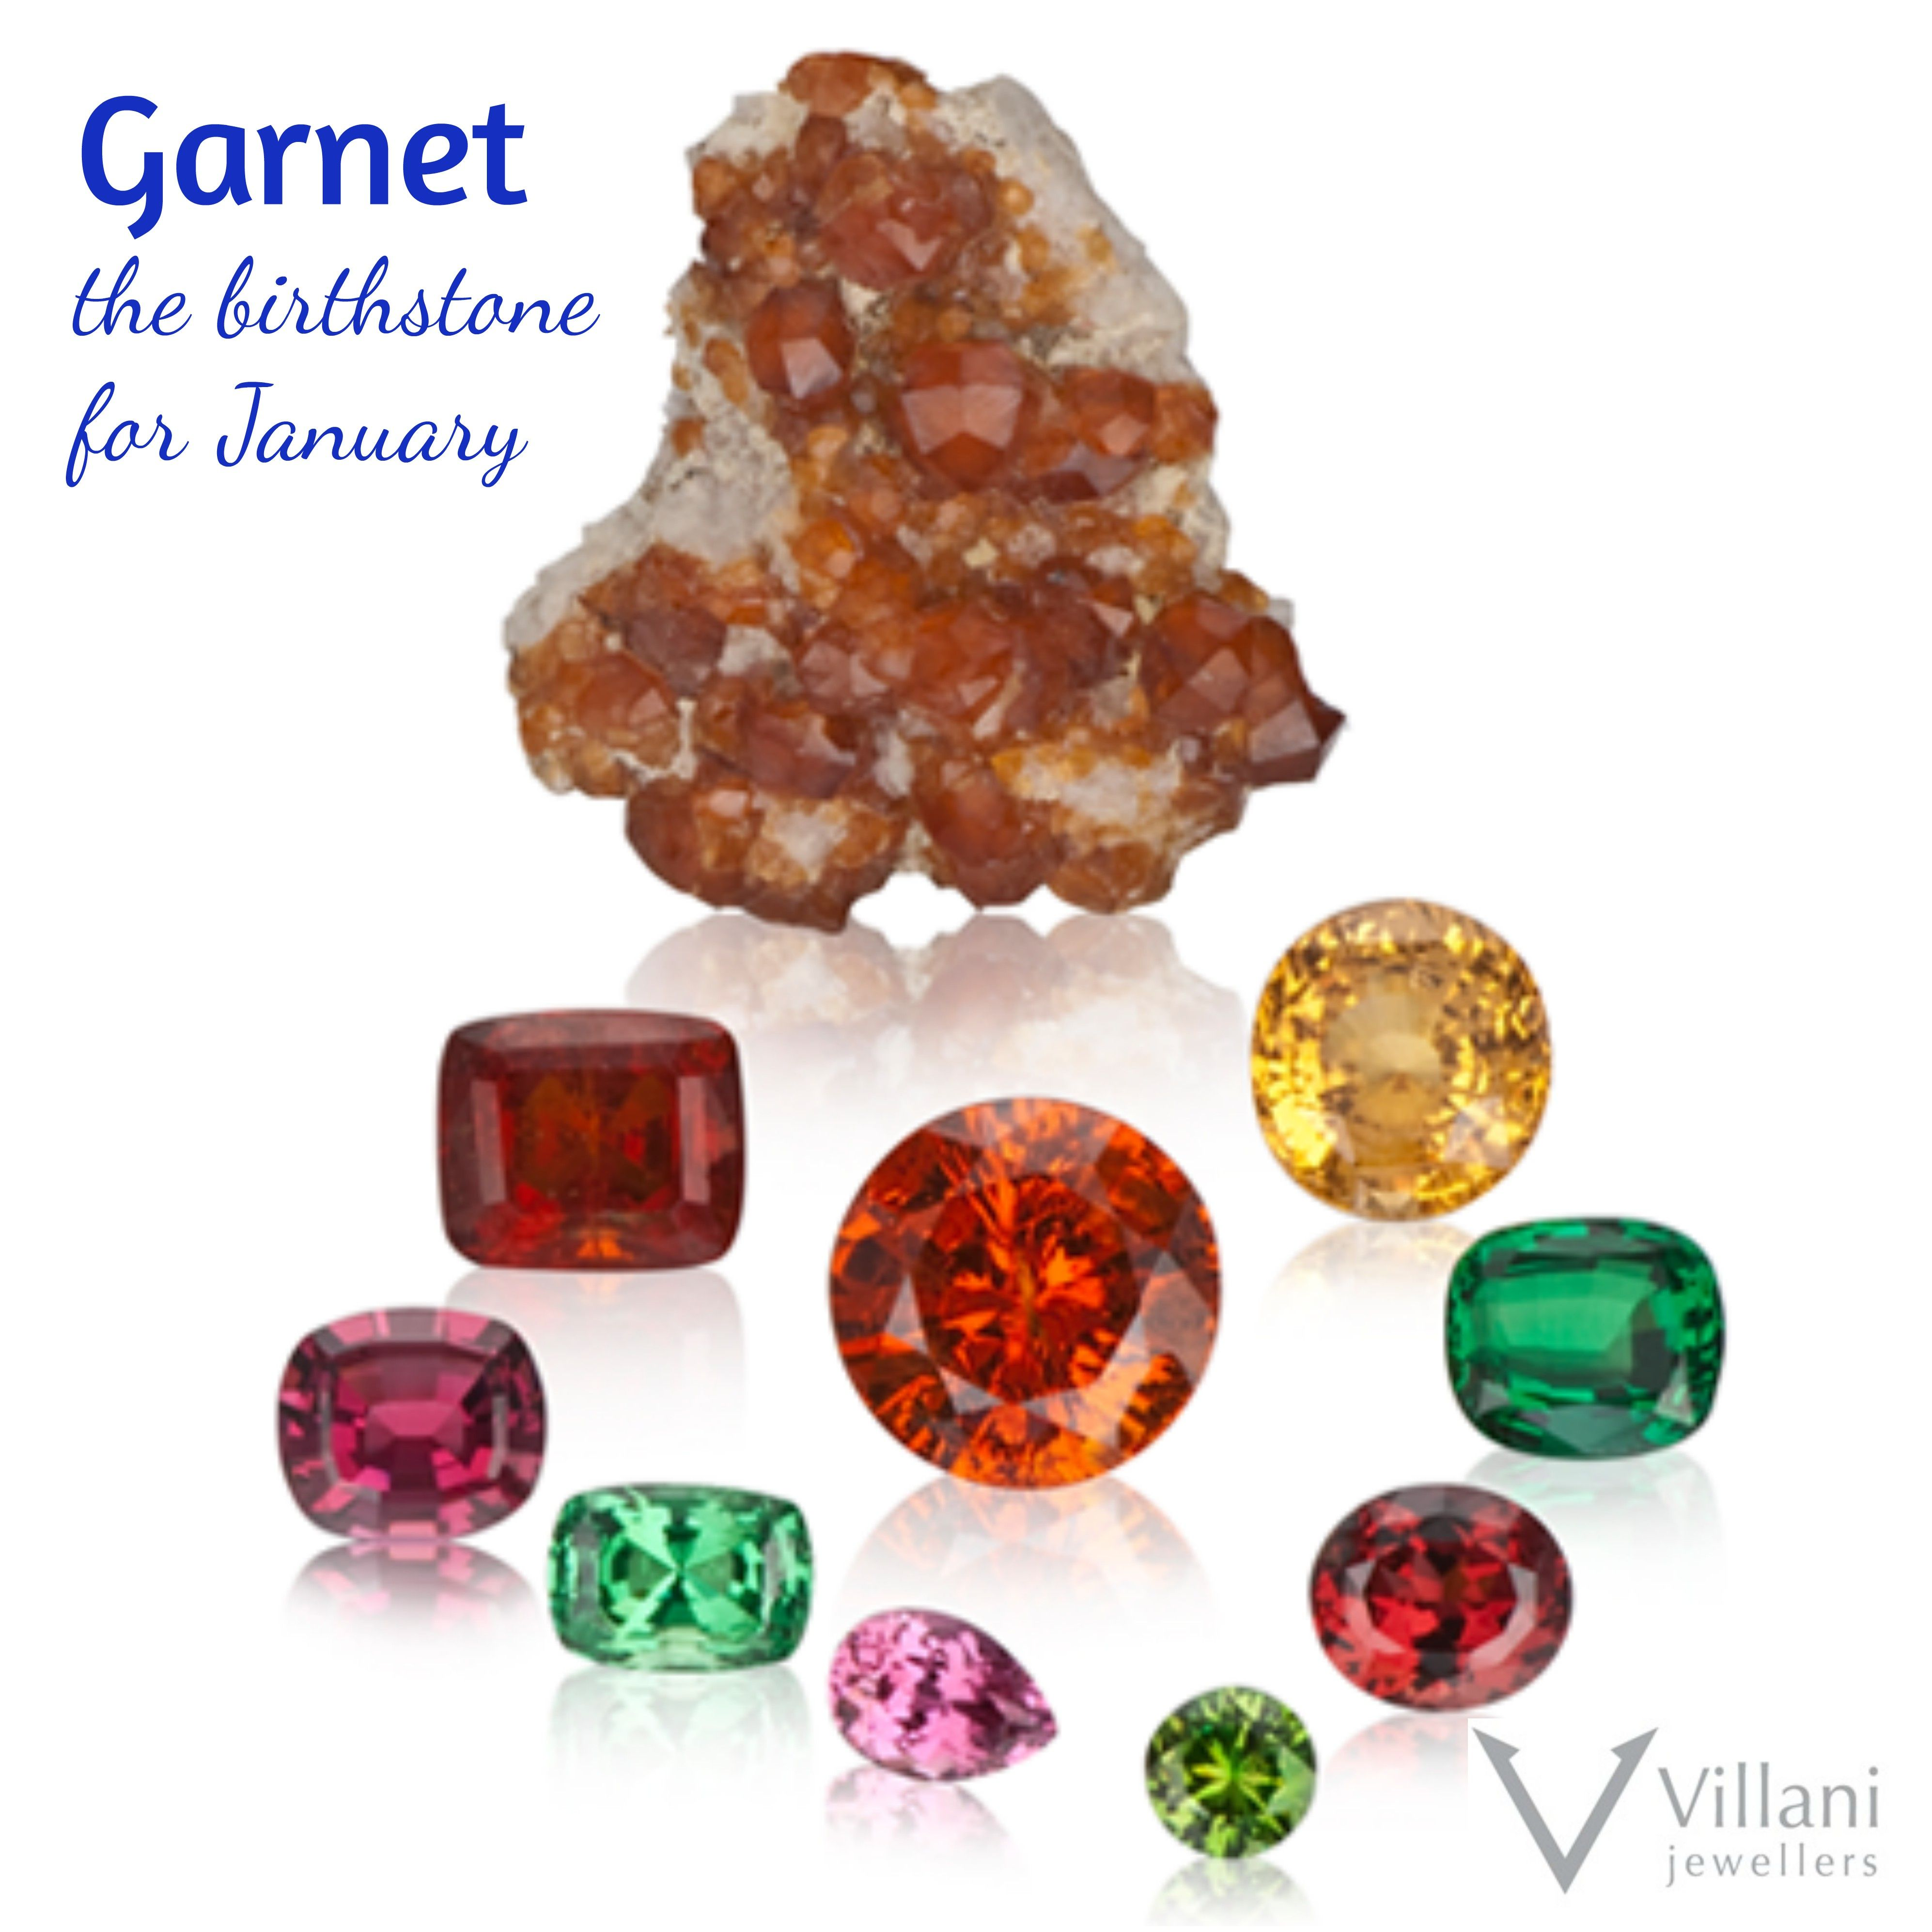 Garnet Is The Birthstone For January And Signifies Eternal Friendship And Trust Villanijewellers January Birthstones Garnet Birthstone January Birth Stone